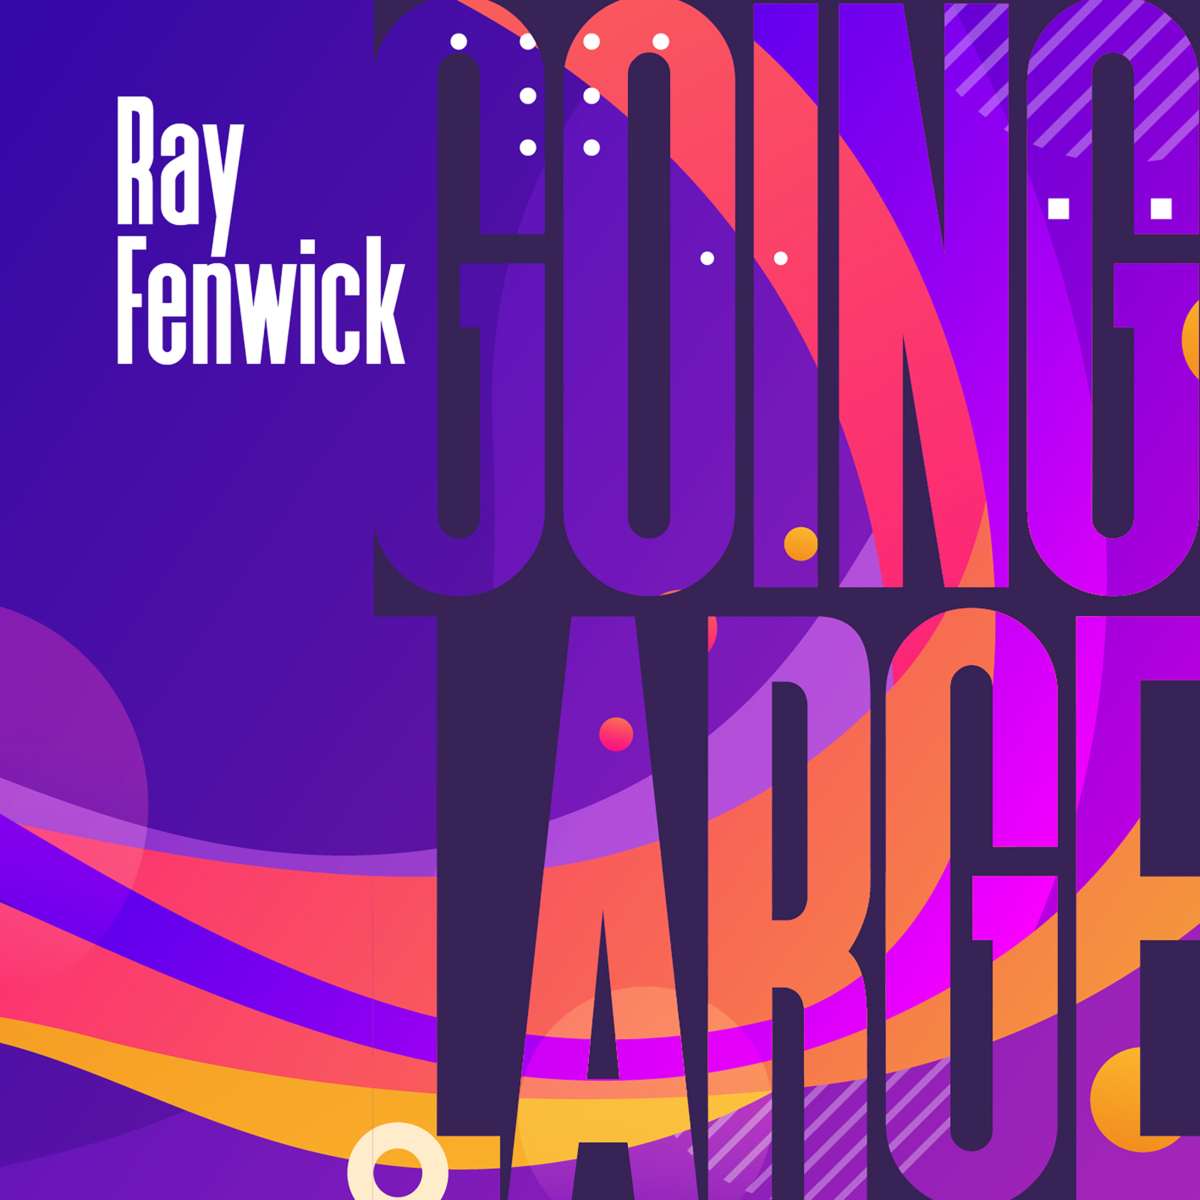 Ray Fenwick - Going Large EP